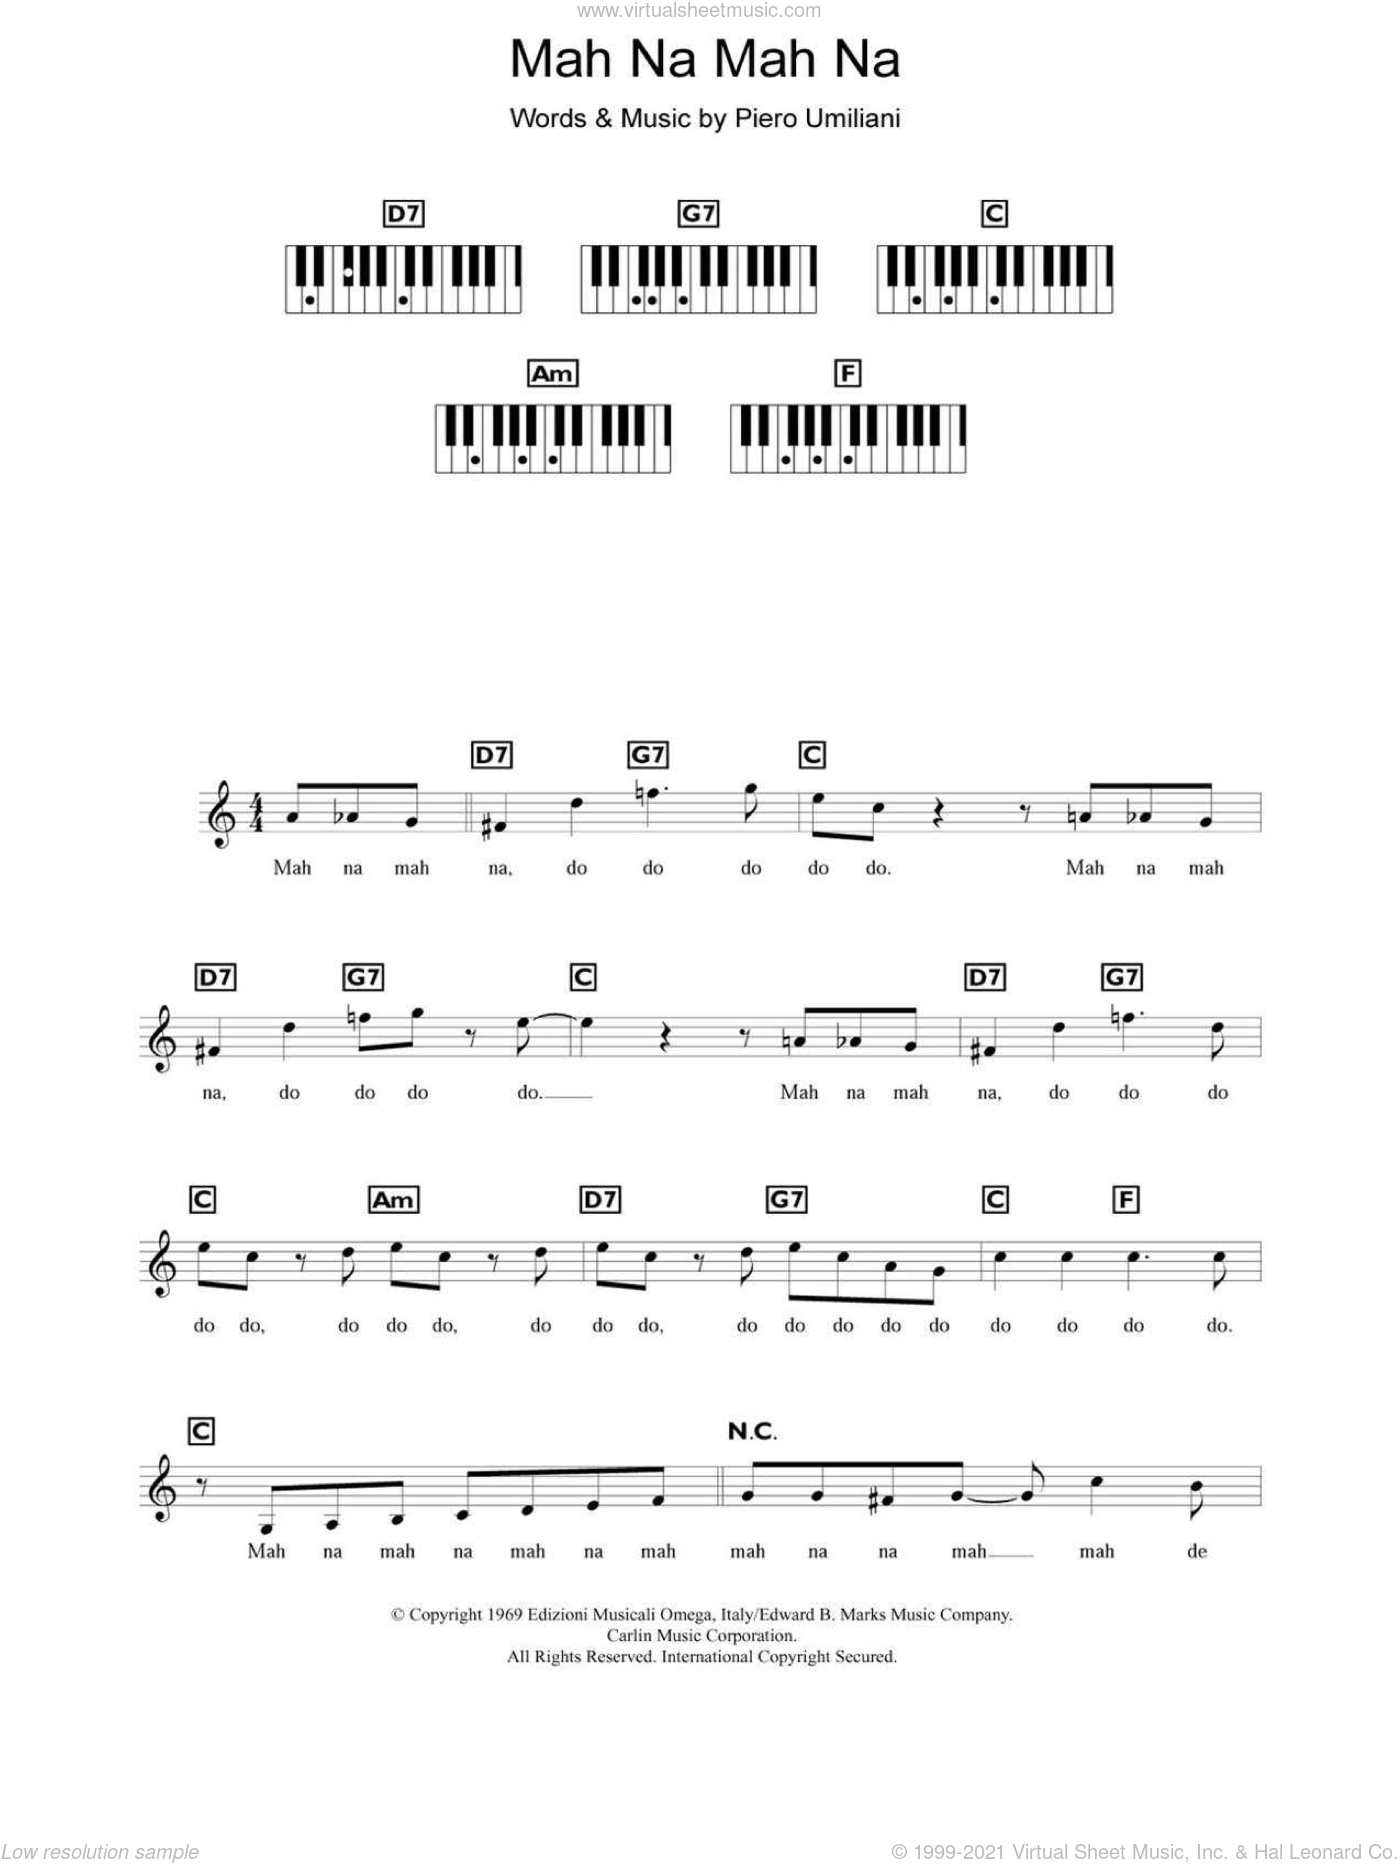 Mah Na Mah Na sheet music for piano solo (chords, lyrics, melody) by Piero Umiliani and The Muppets. Score Image Preview.